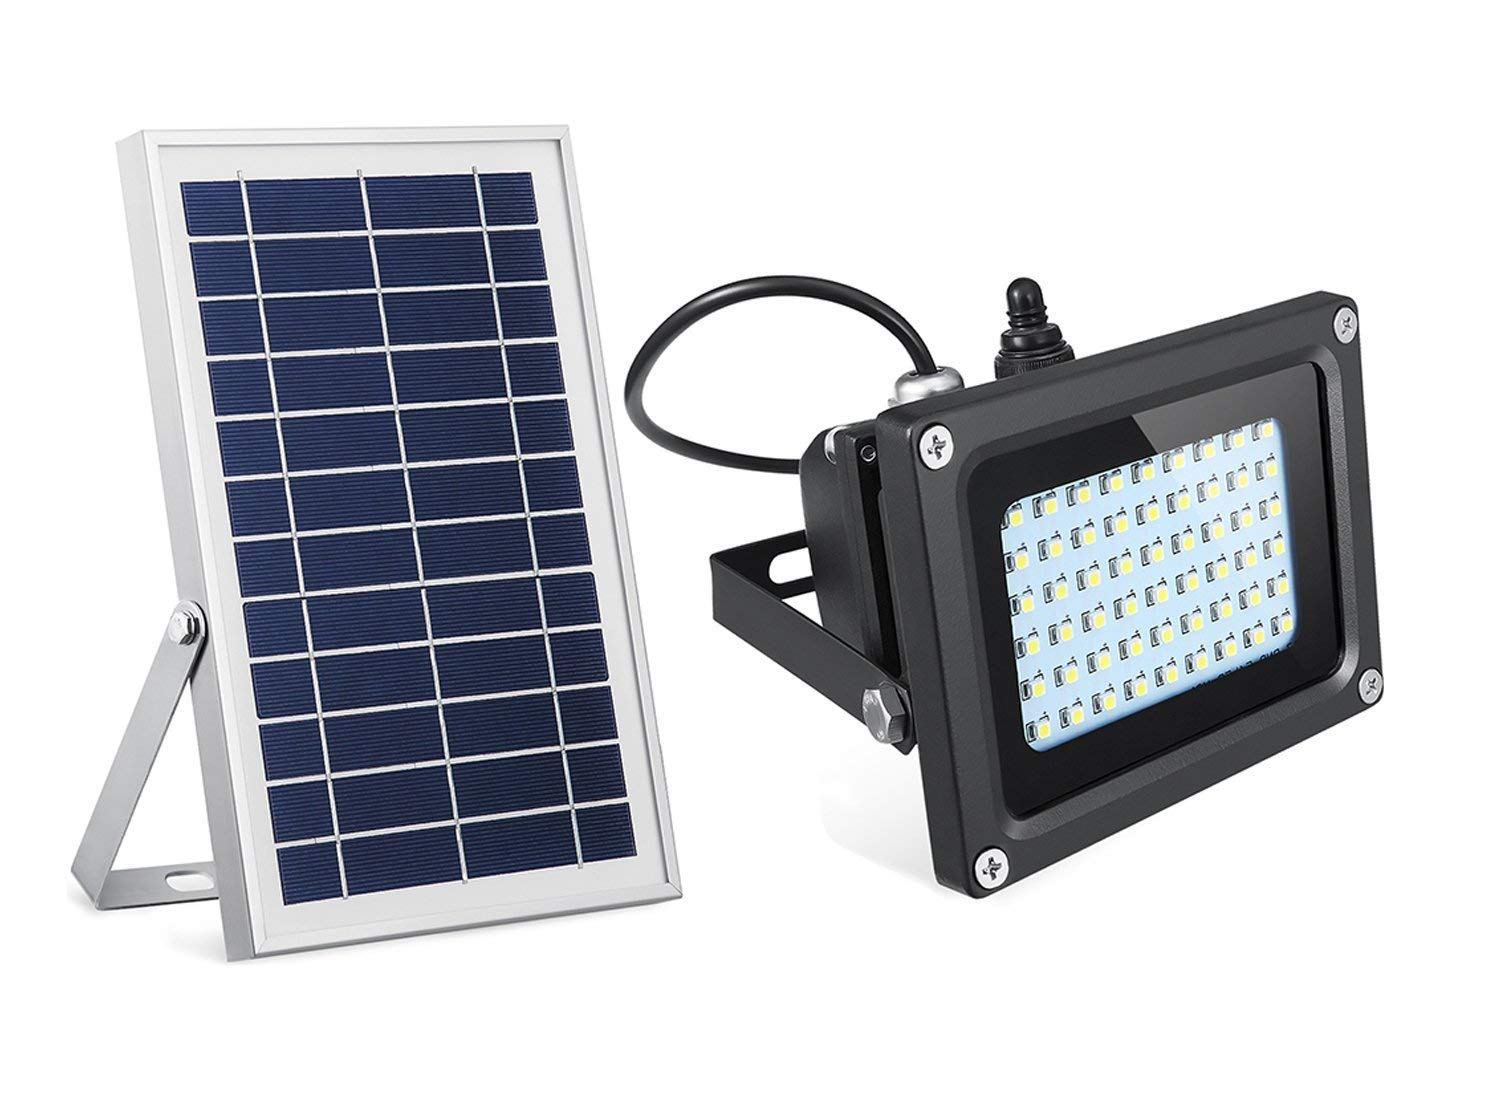 経典ブランド SeminTech Solar Flood Lights 54 LED 500 Lumens 6W